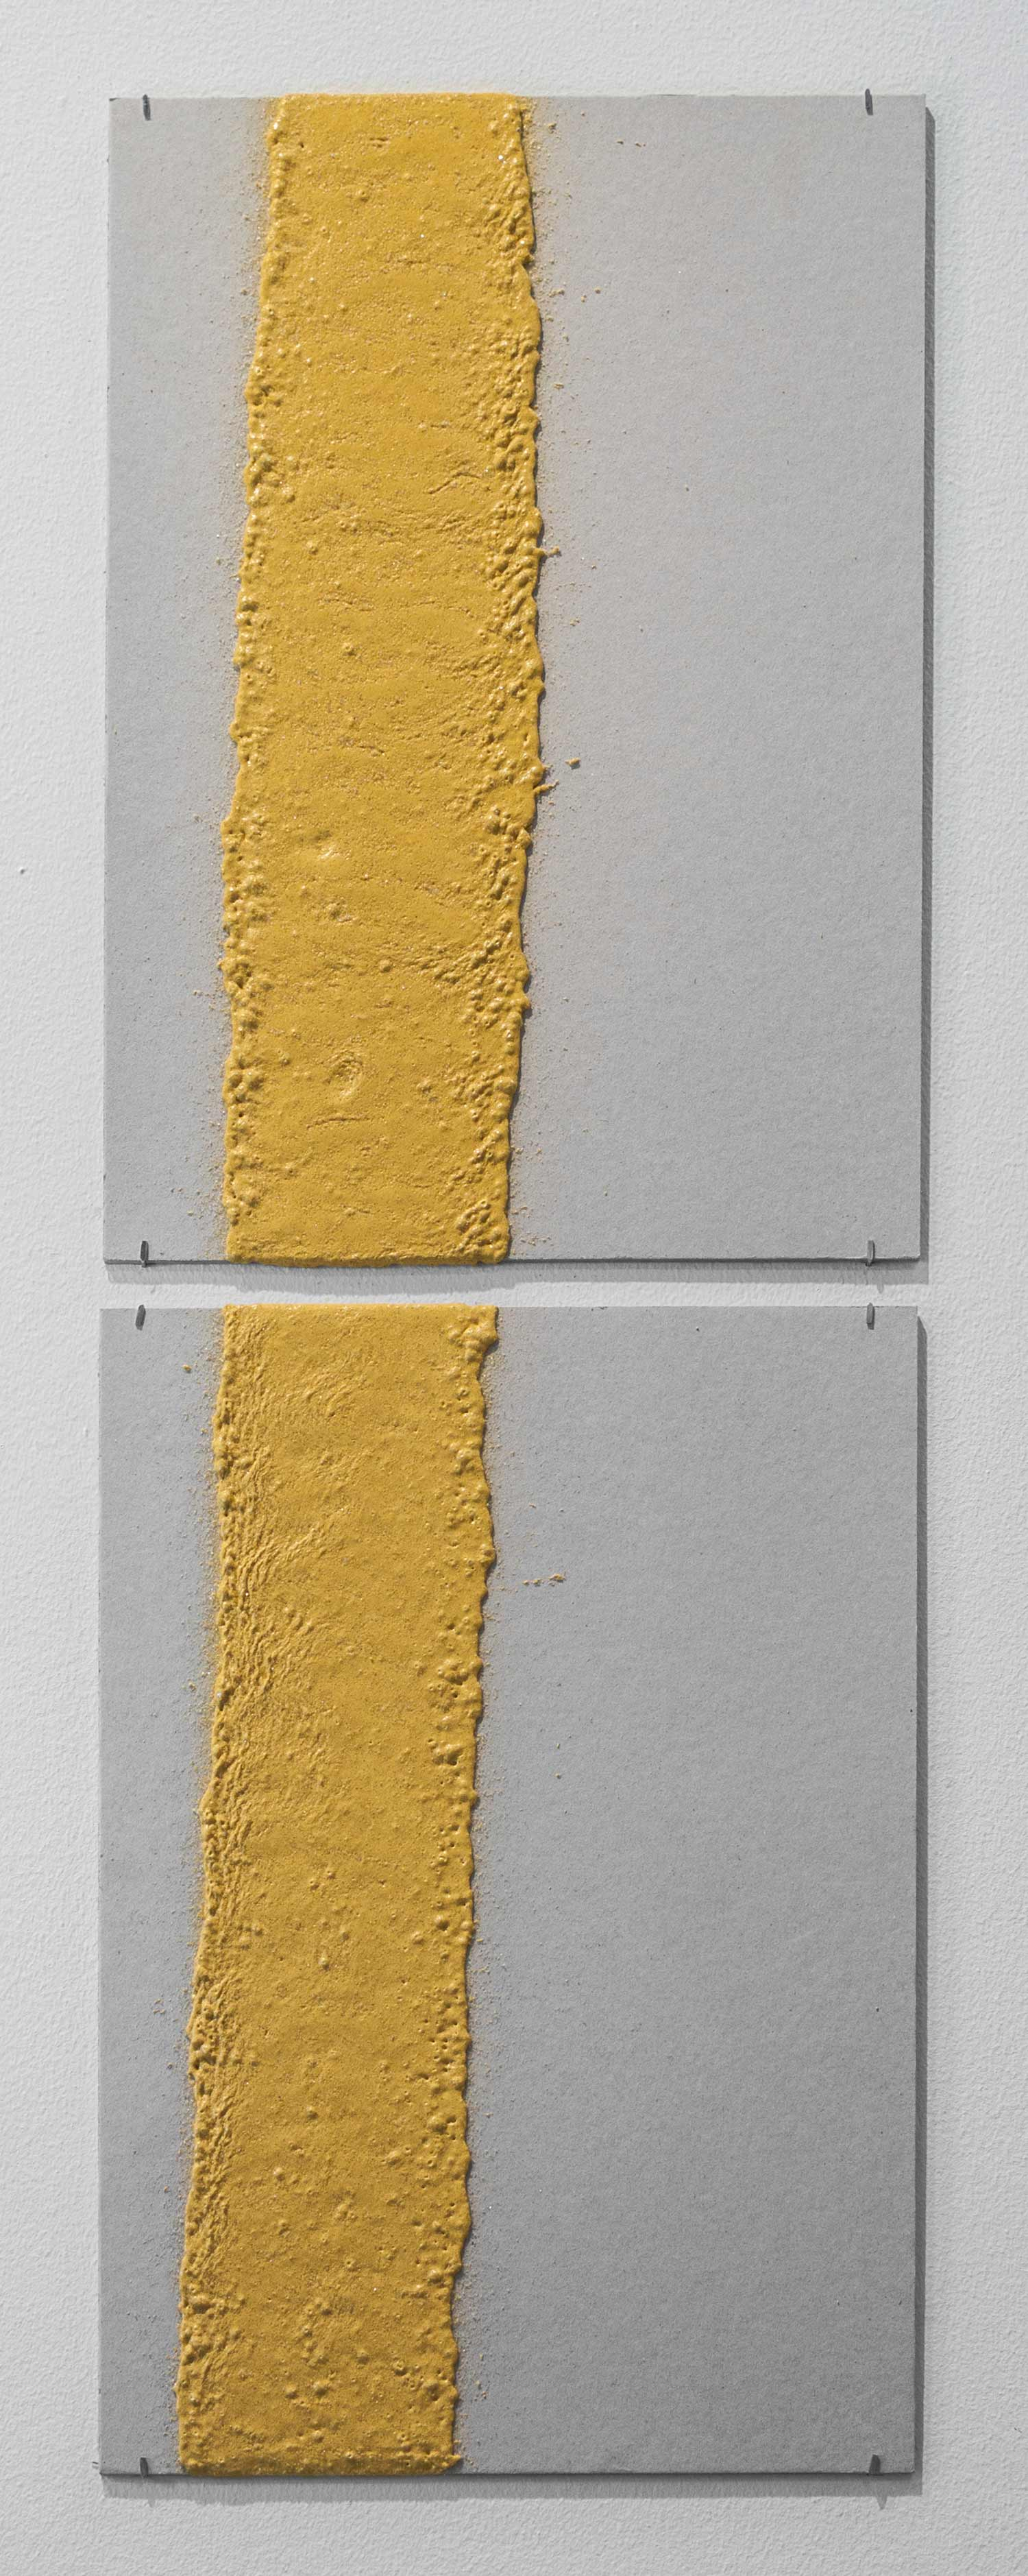 100mm (W), 1.5mm (T), Yellow, edge line (613), machine marking, Al Khawaneej 1, St 120,  2017  Thermoplastic paint, reflective glass particles and grey board  Diptych: 50 x 35 cm each